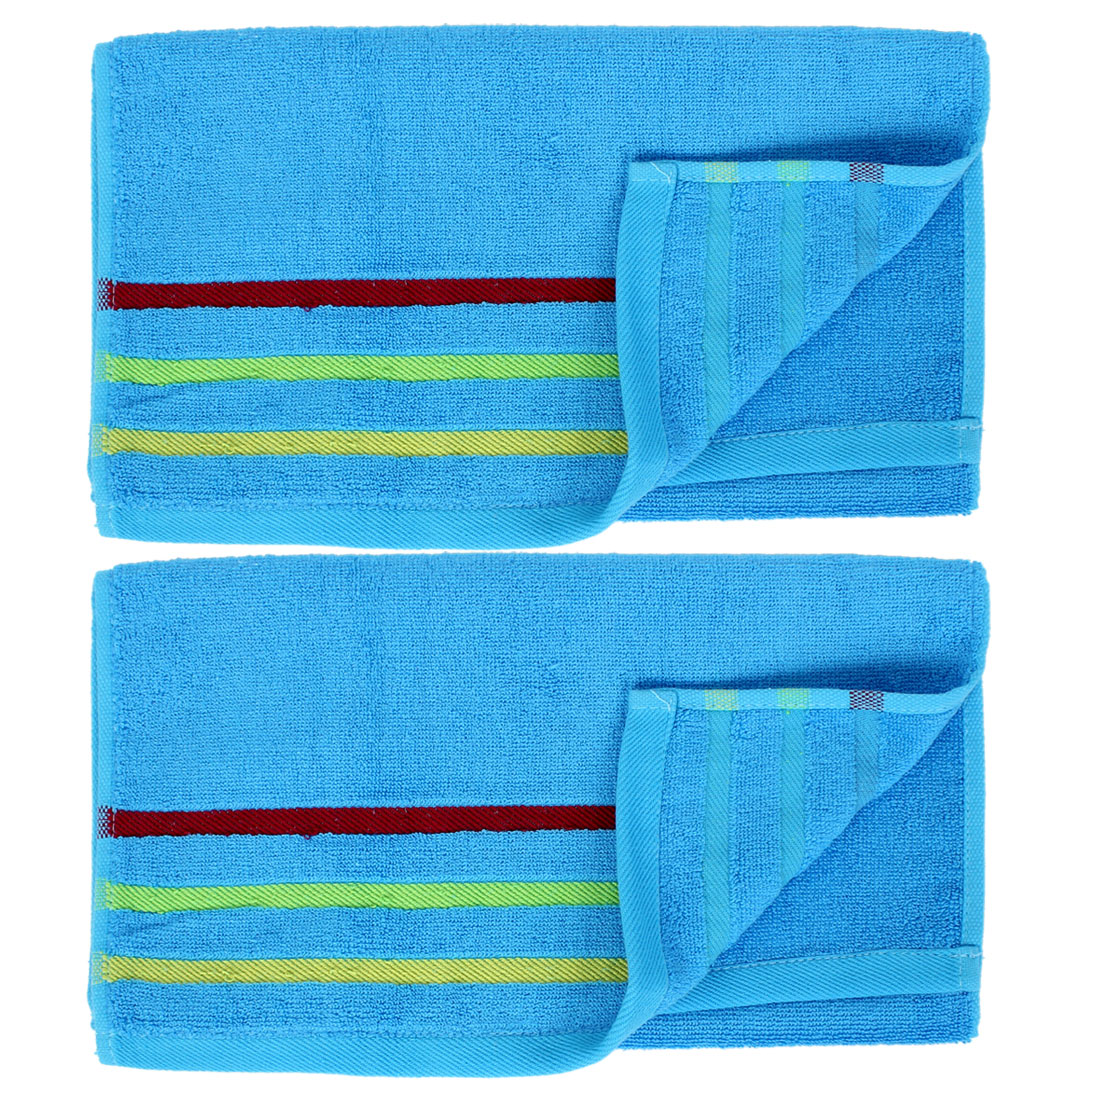 Cotton Blend Shower Face Washing Water Absorbent Terry Towel Washcloths Blue 2pcs